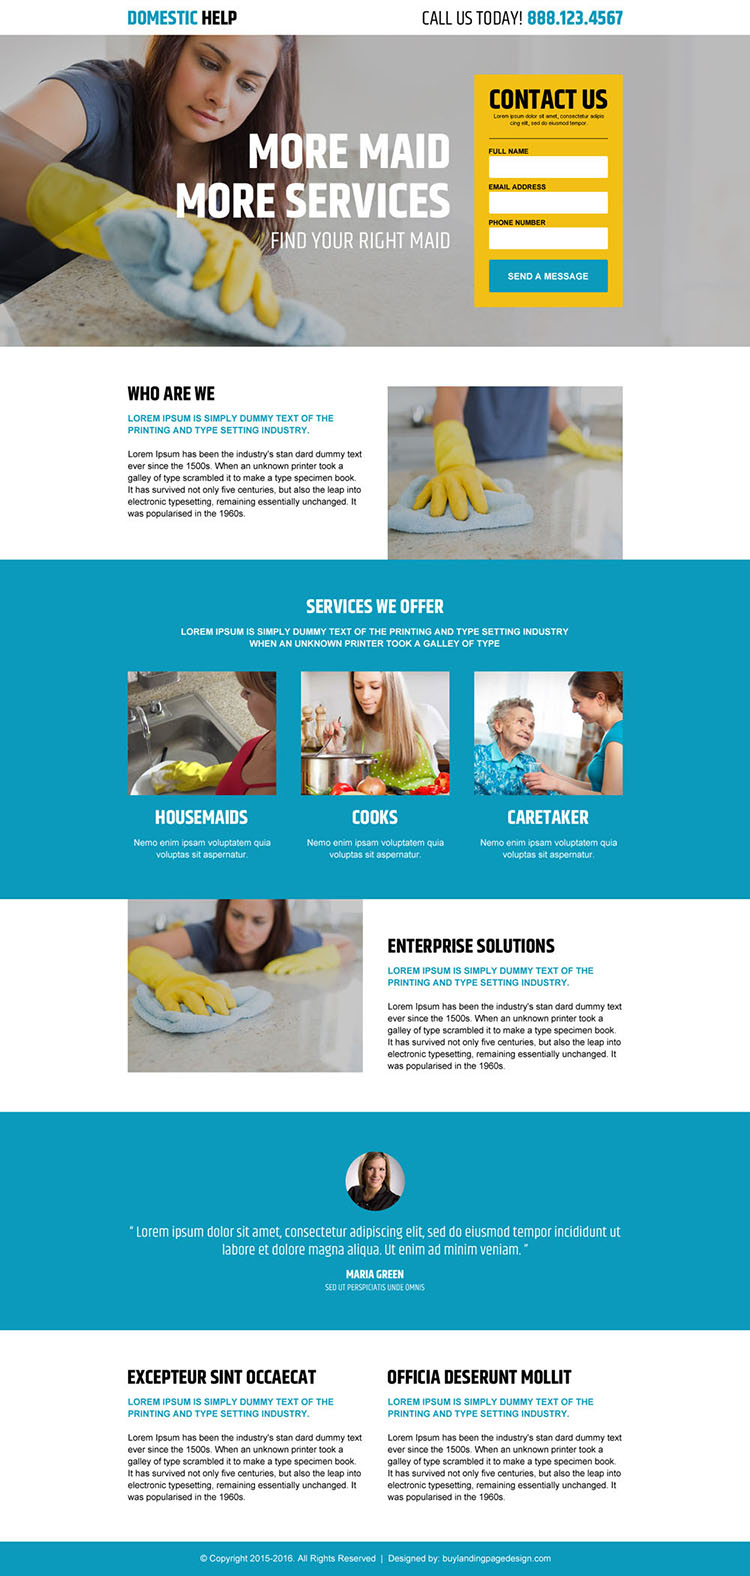 domestic maid agency service responsive landing page design